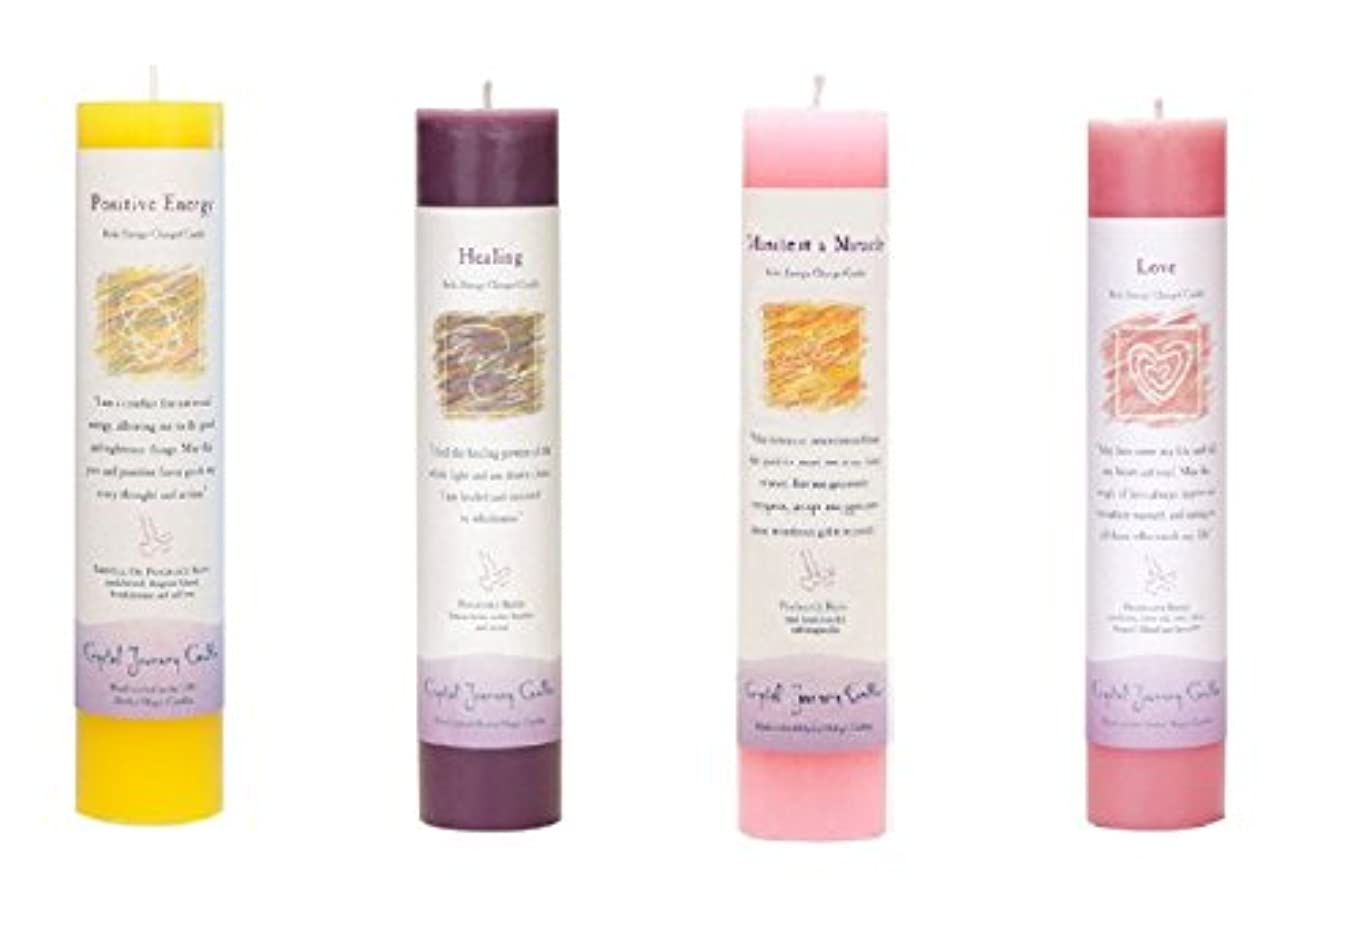 (Positive Energy, Healing, Manifest a Miracle, Love) - Crystal Journey Reiki Charged Herbal Magic Pillar Candle...